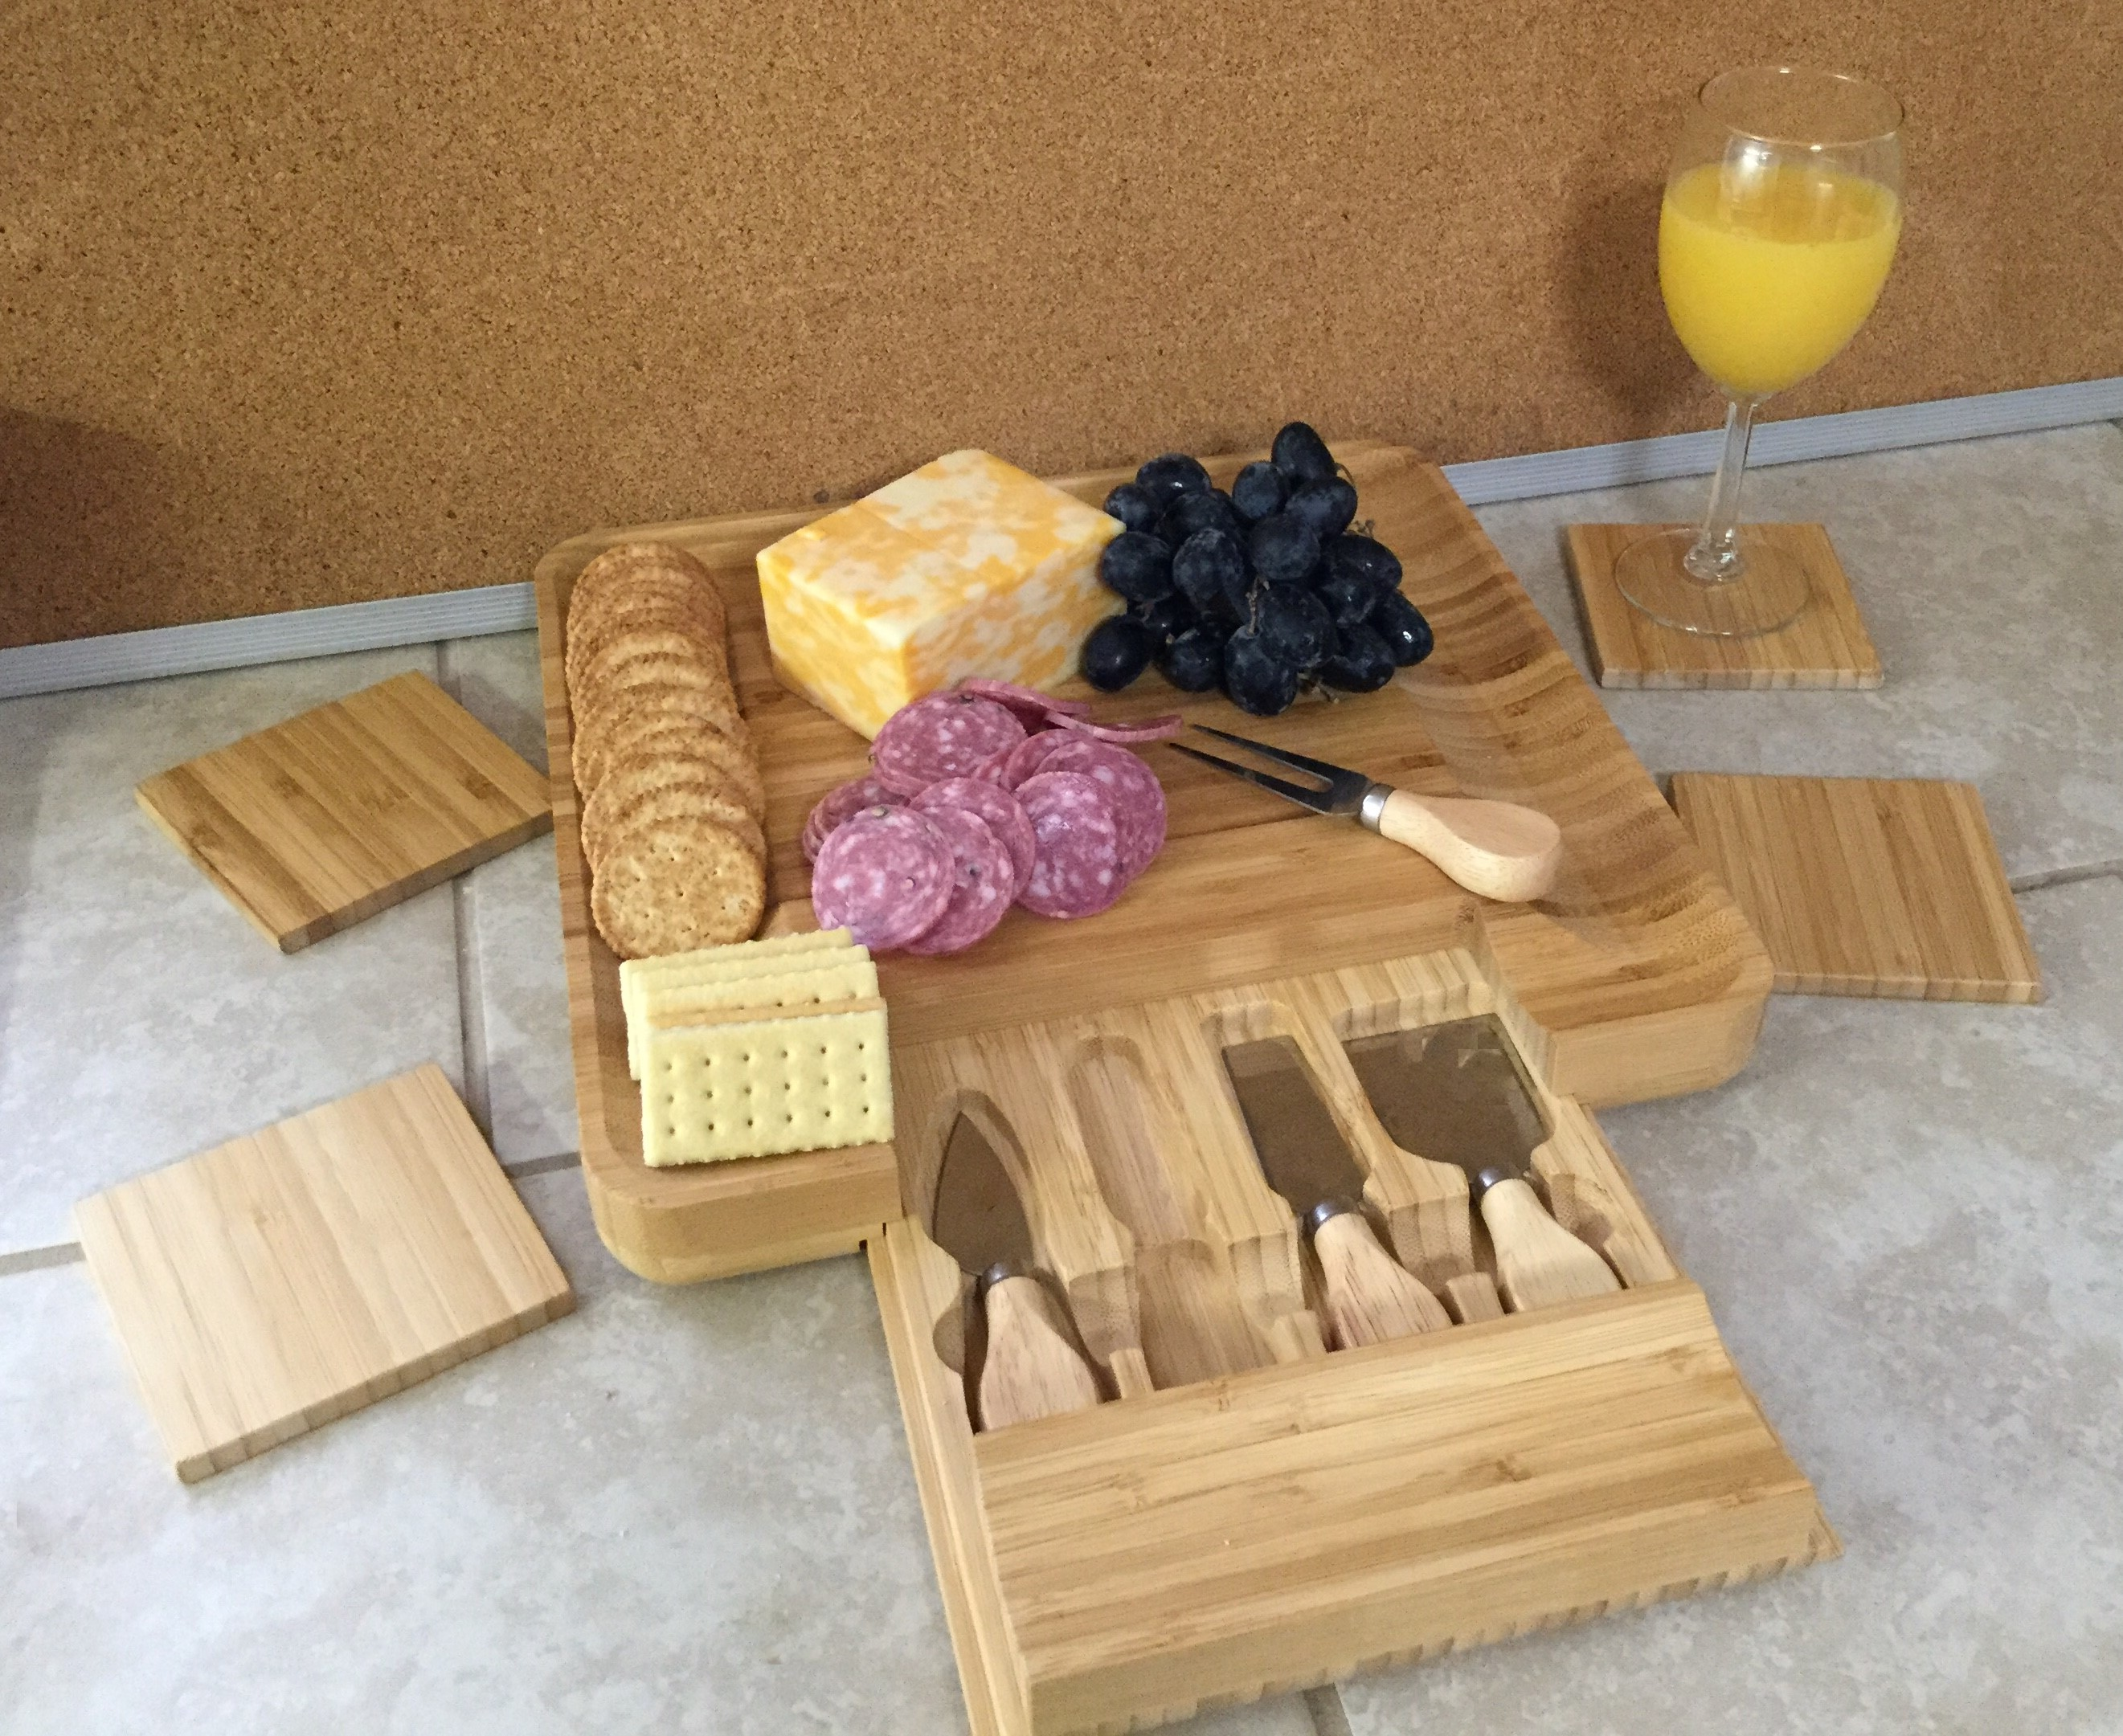 This cheese board set is beautiful